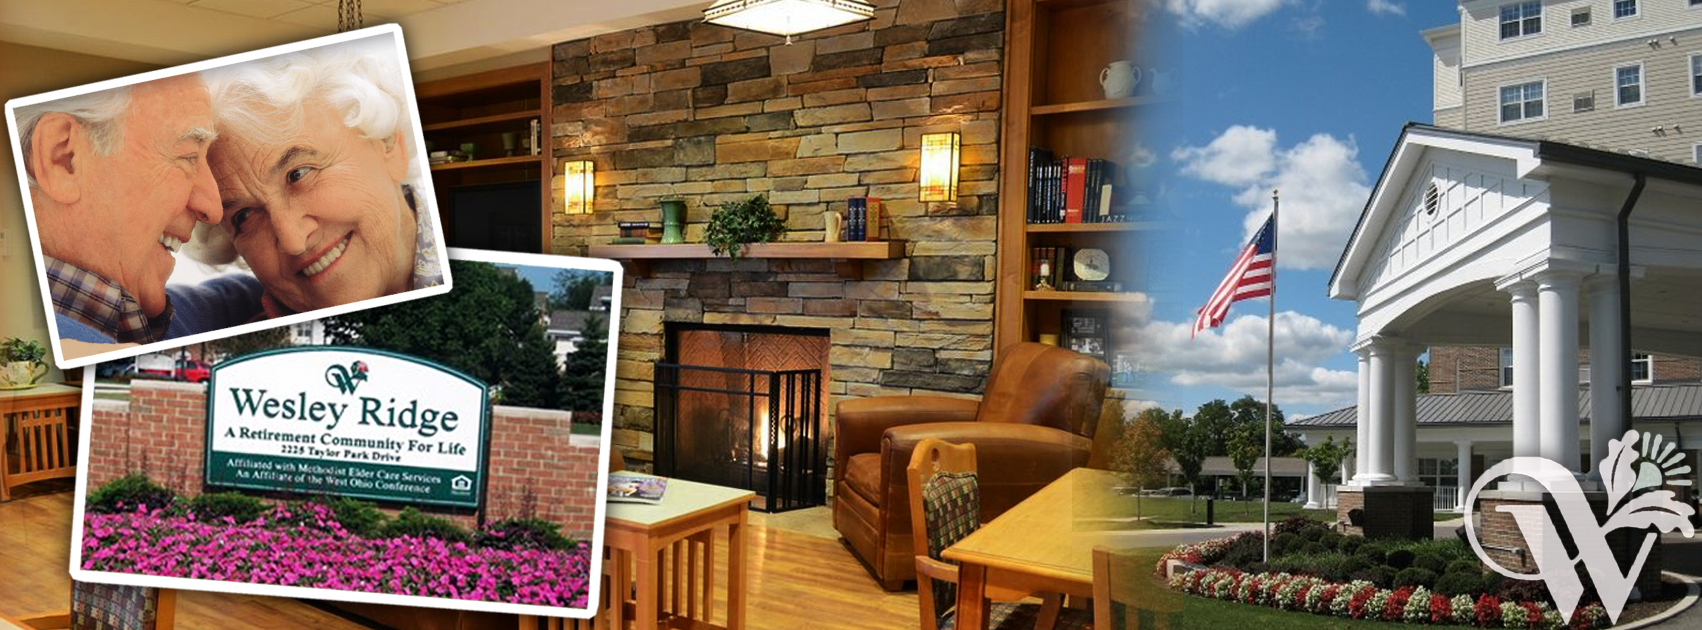 Wesley Ridge Retirement Community reviews | Assisted Living Facilities at 2225 Taylor Park Dr - Reynoldsburg OH